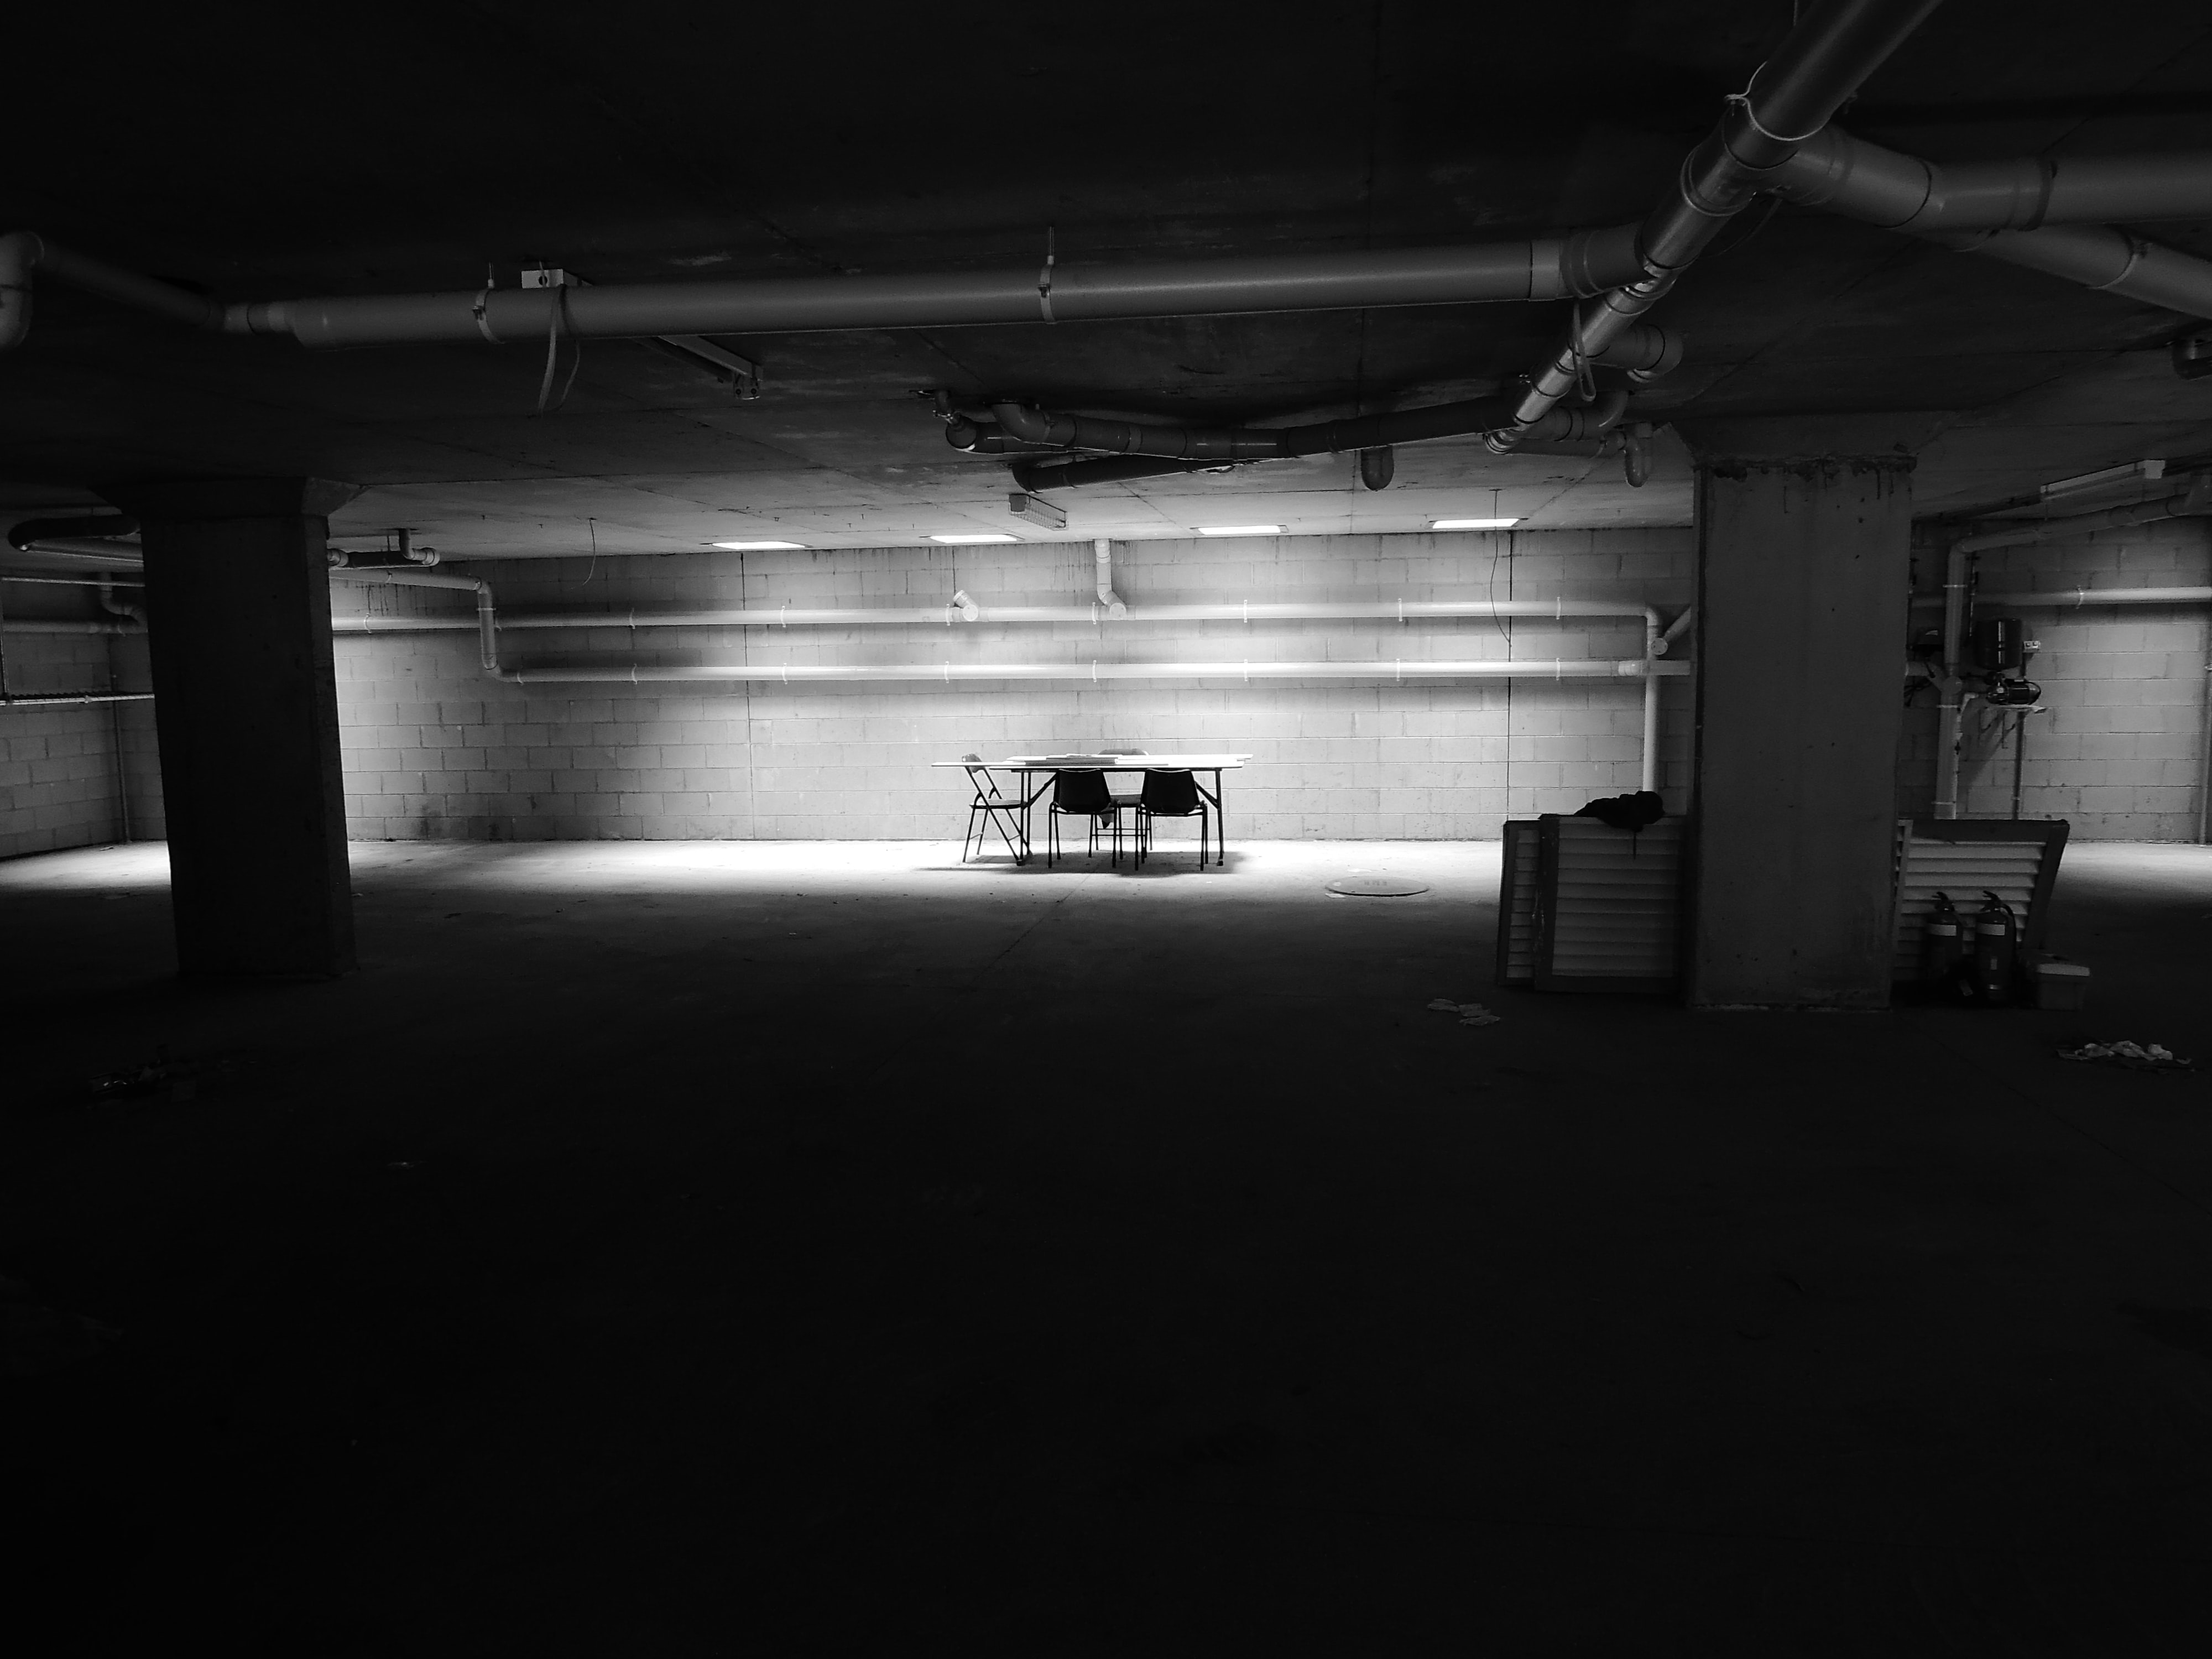 An empty table with chairs in a dark basement